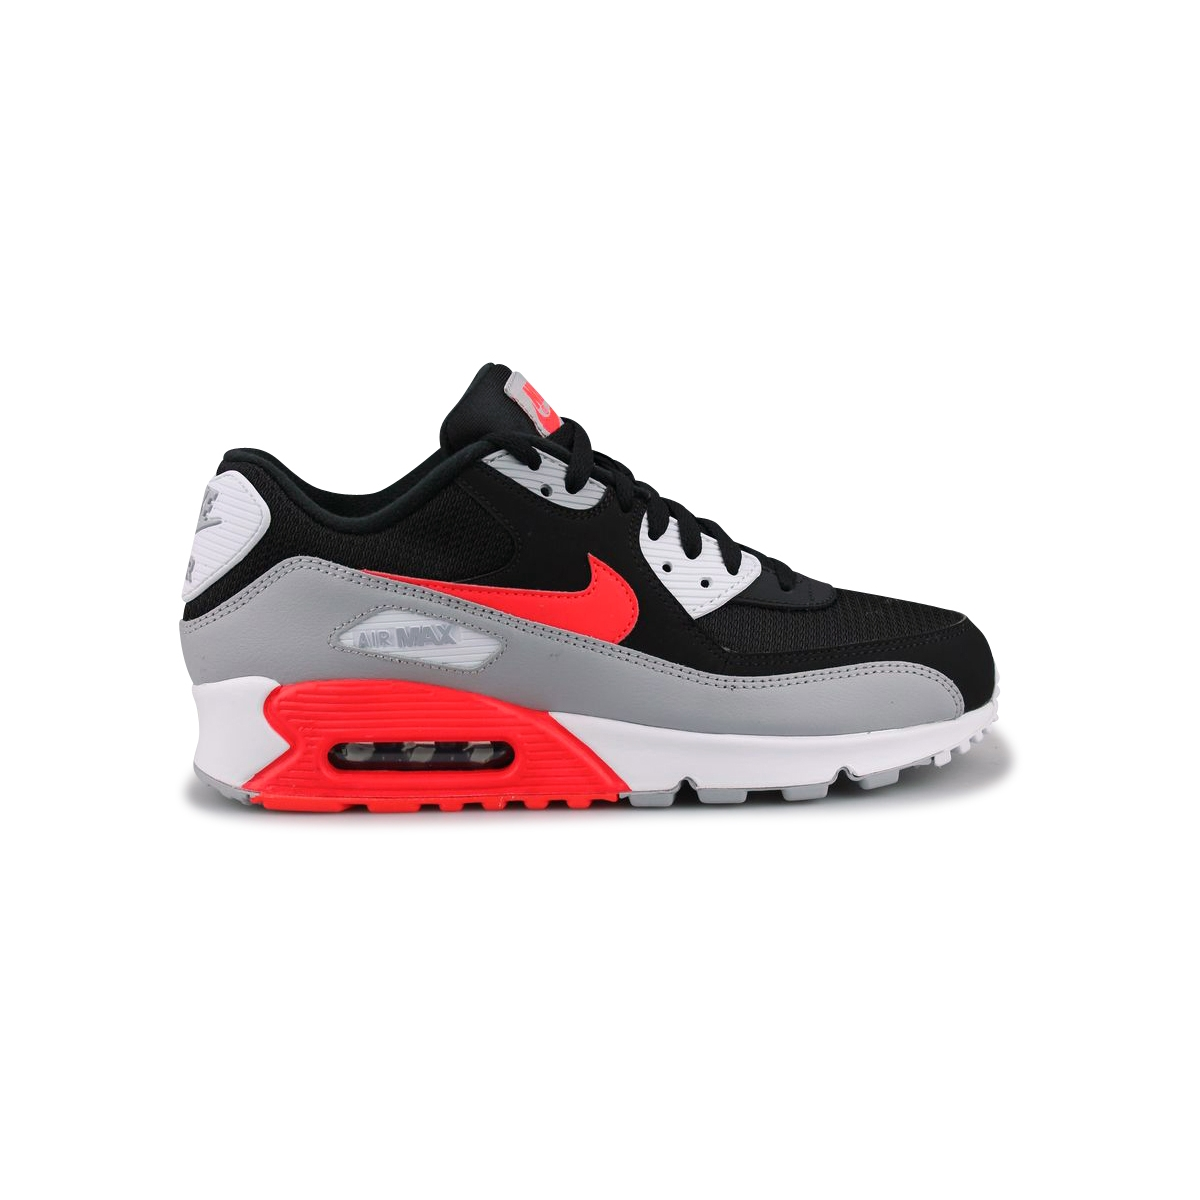 new arrival db220 9d6ed NIKE AIR MAX 90 ESSENTIAL GRIS LOUP AJ1285-012. Loading zoom